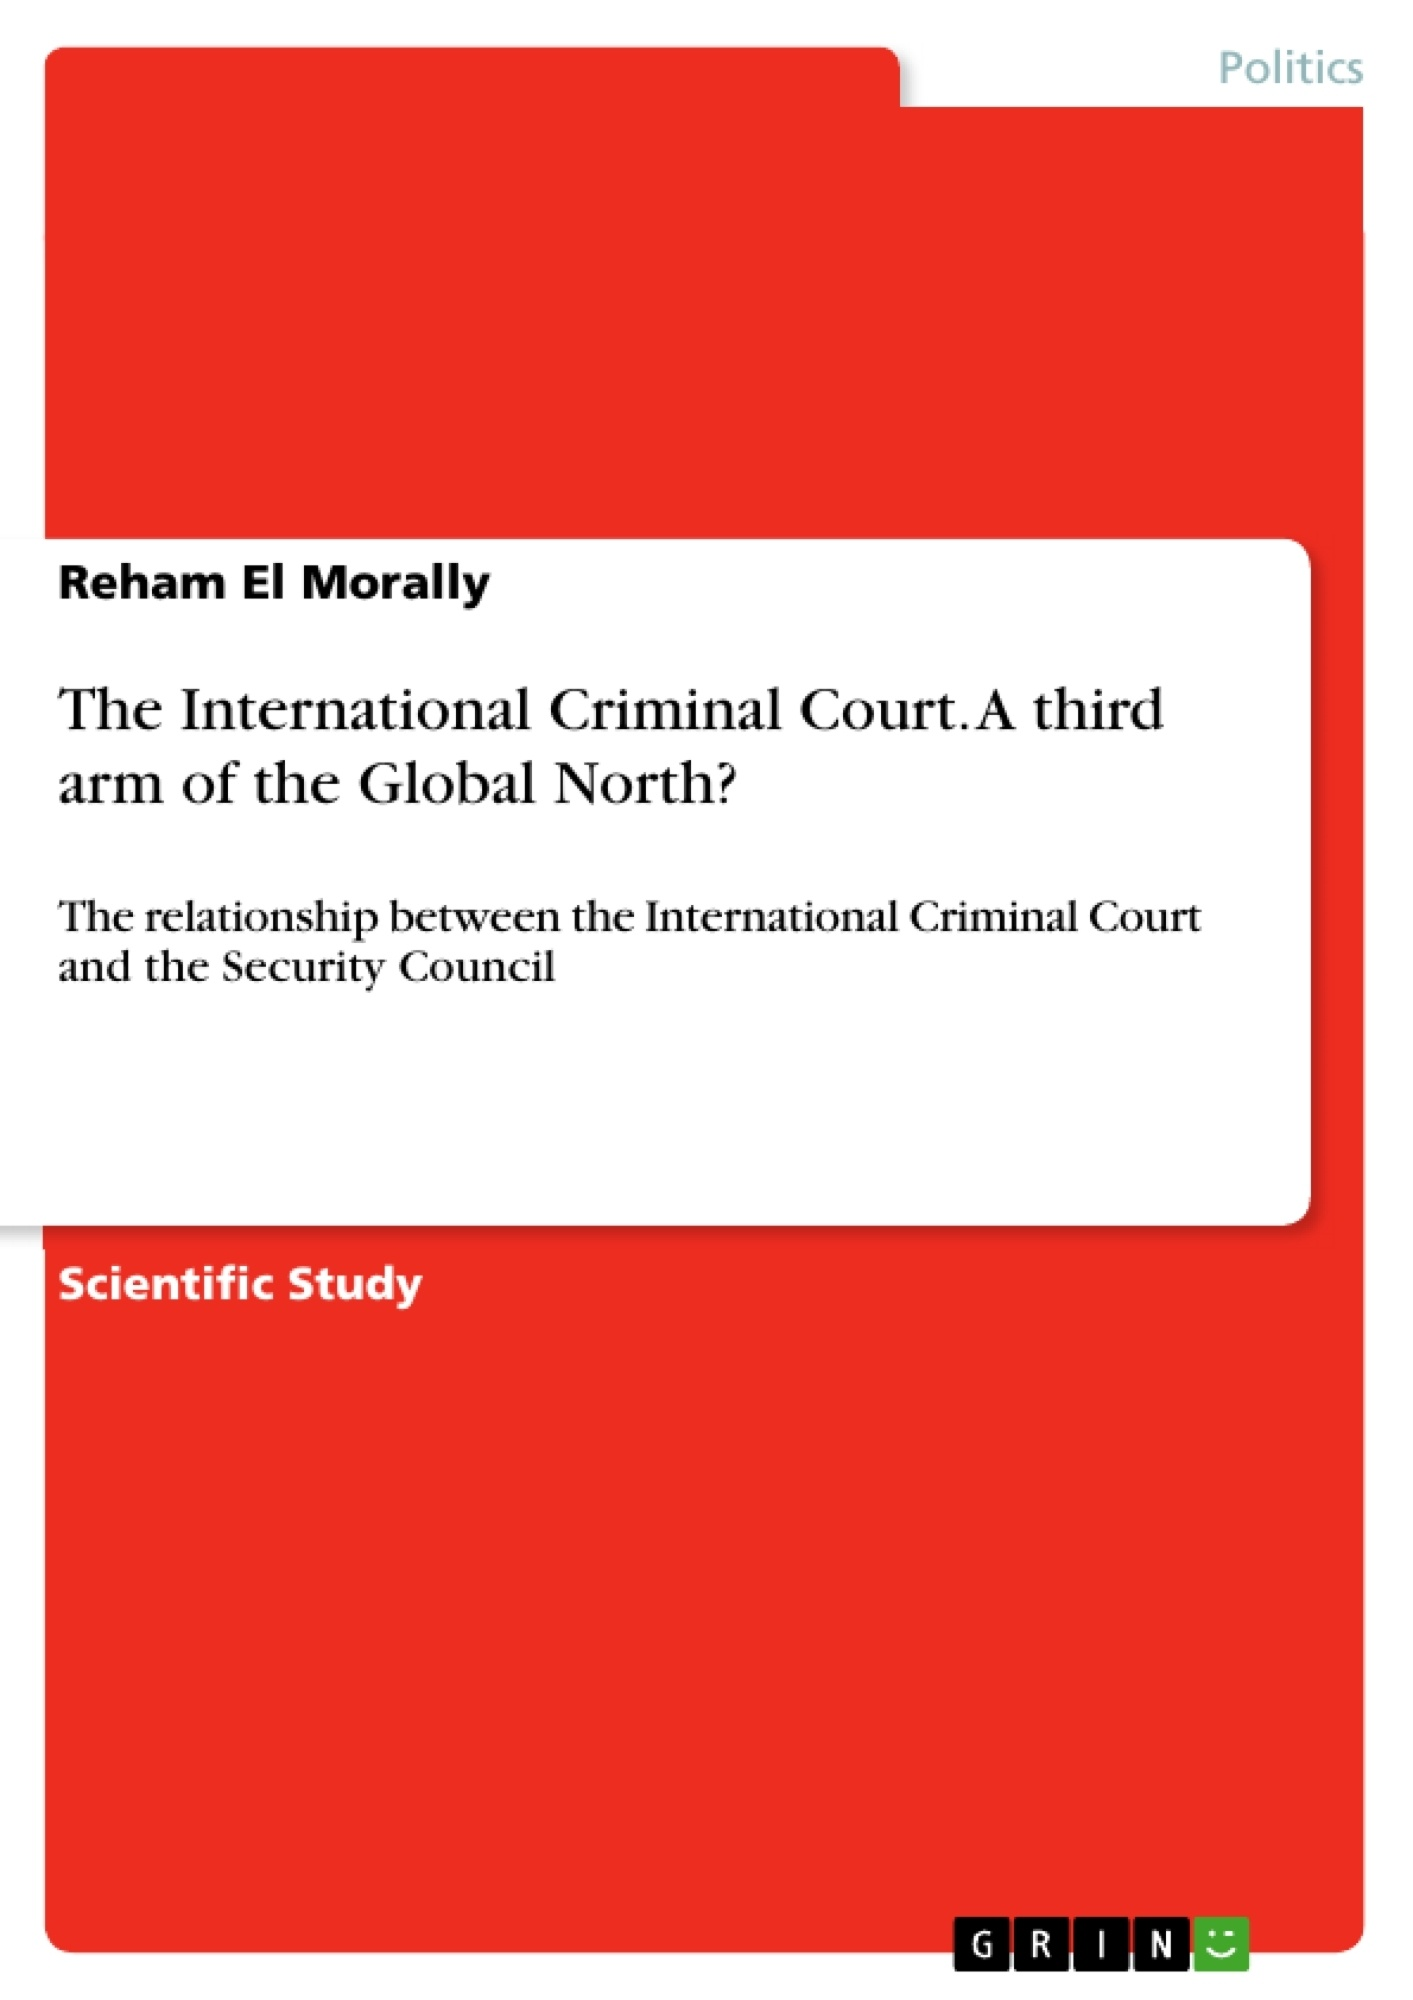 Title: The International Criminal Court. A third arm of the Global North?